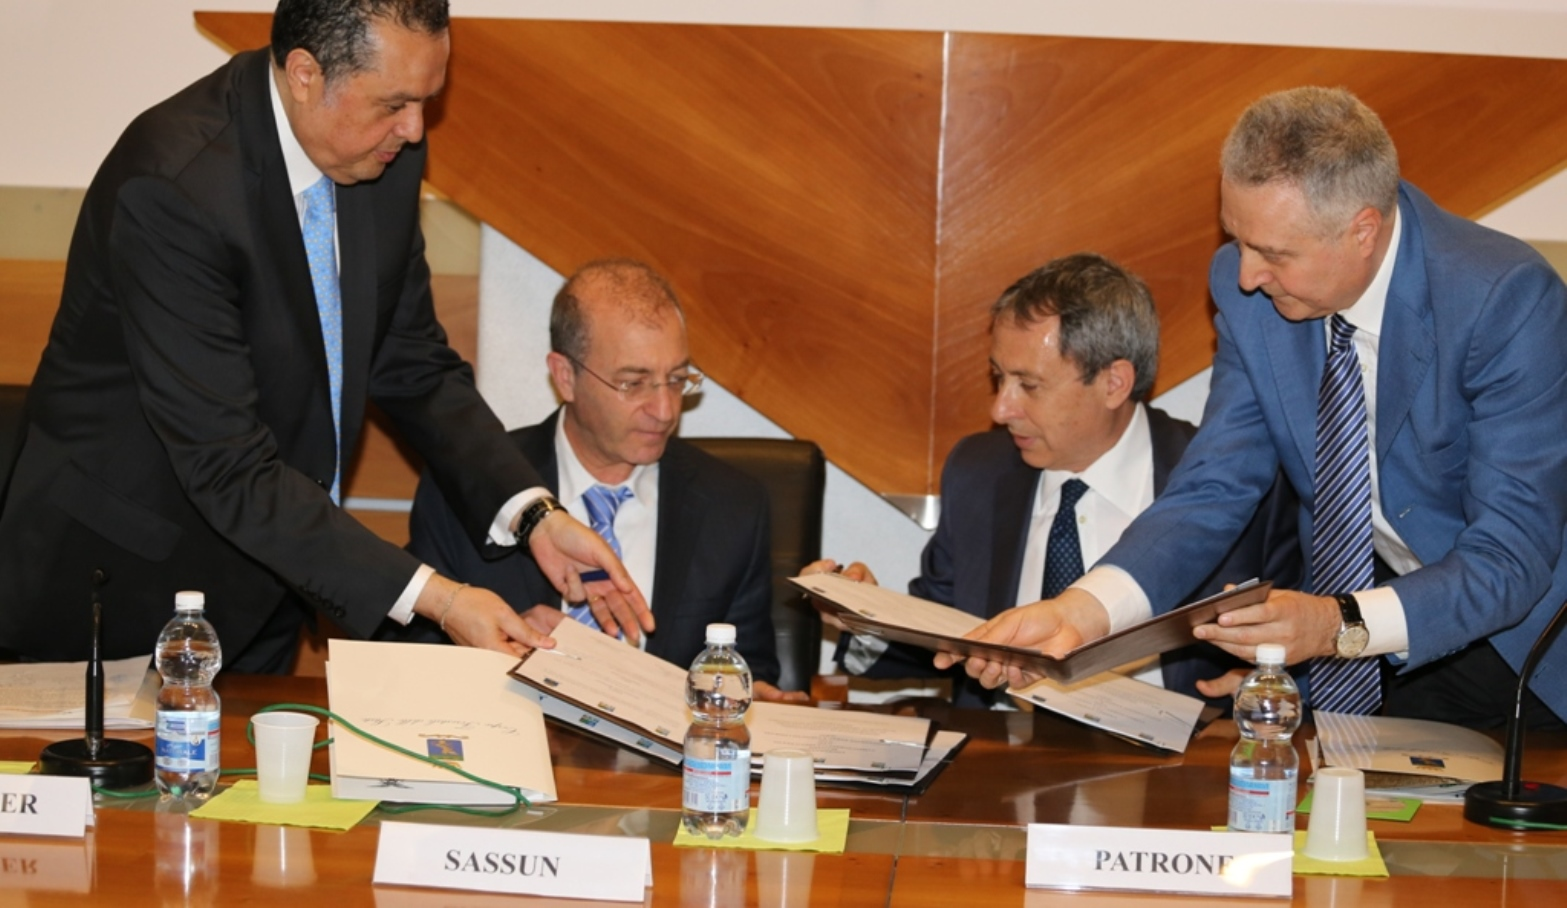 The signing of the MOU between KKL-JNF and the Italian State Forestry Corps in Rome, April 2016. Photo: courtesy